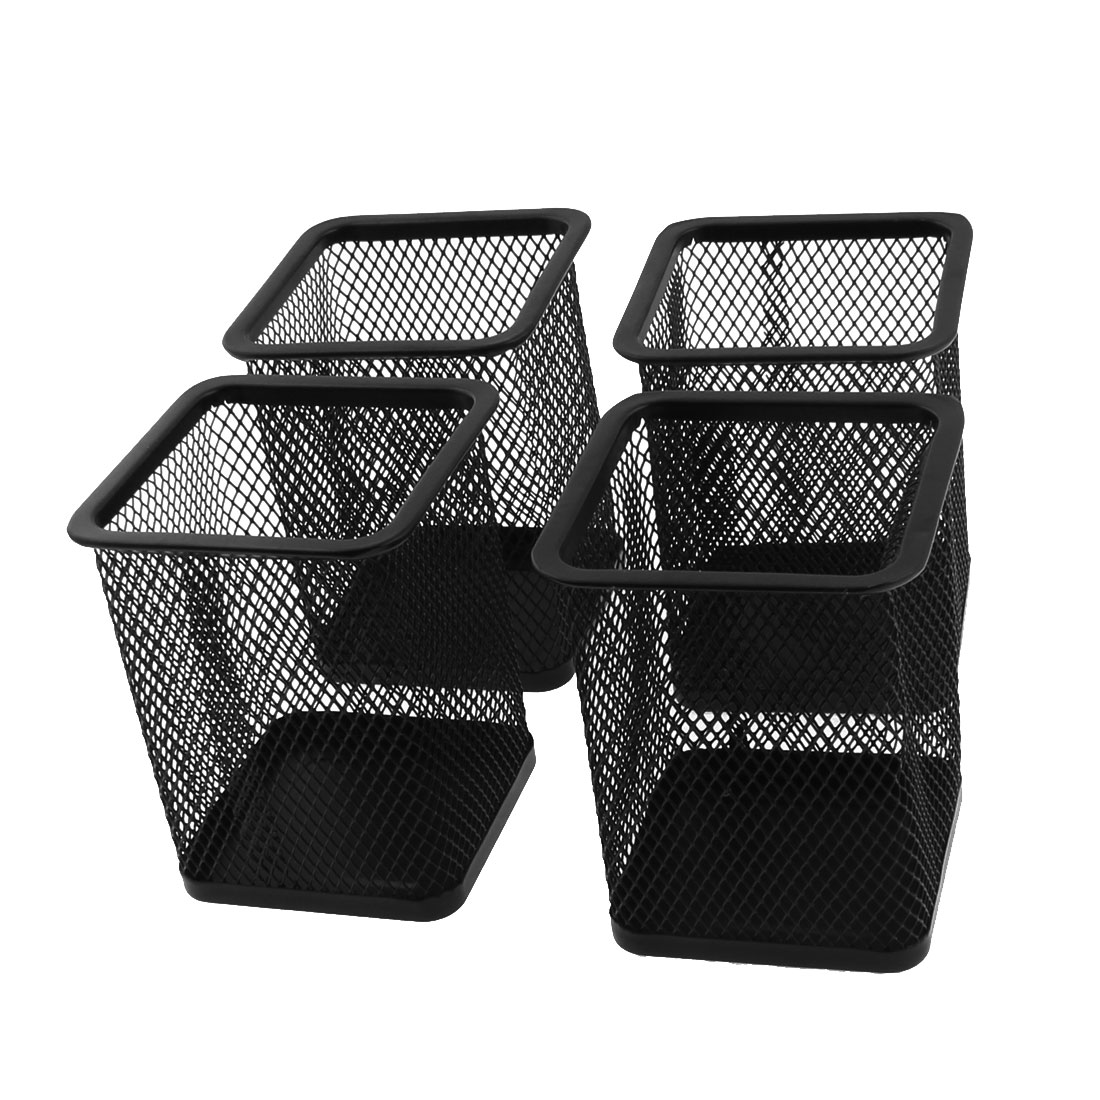 Office Desk Metal Mesh Stationery Pencil Pen Holder Container Black 4pcs